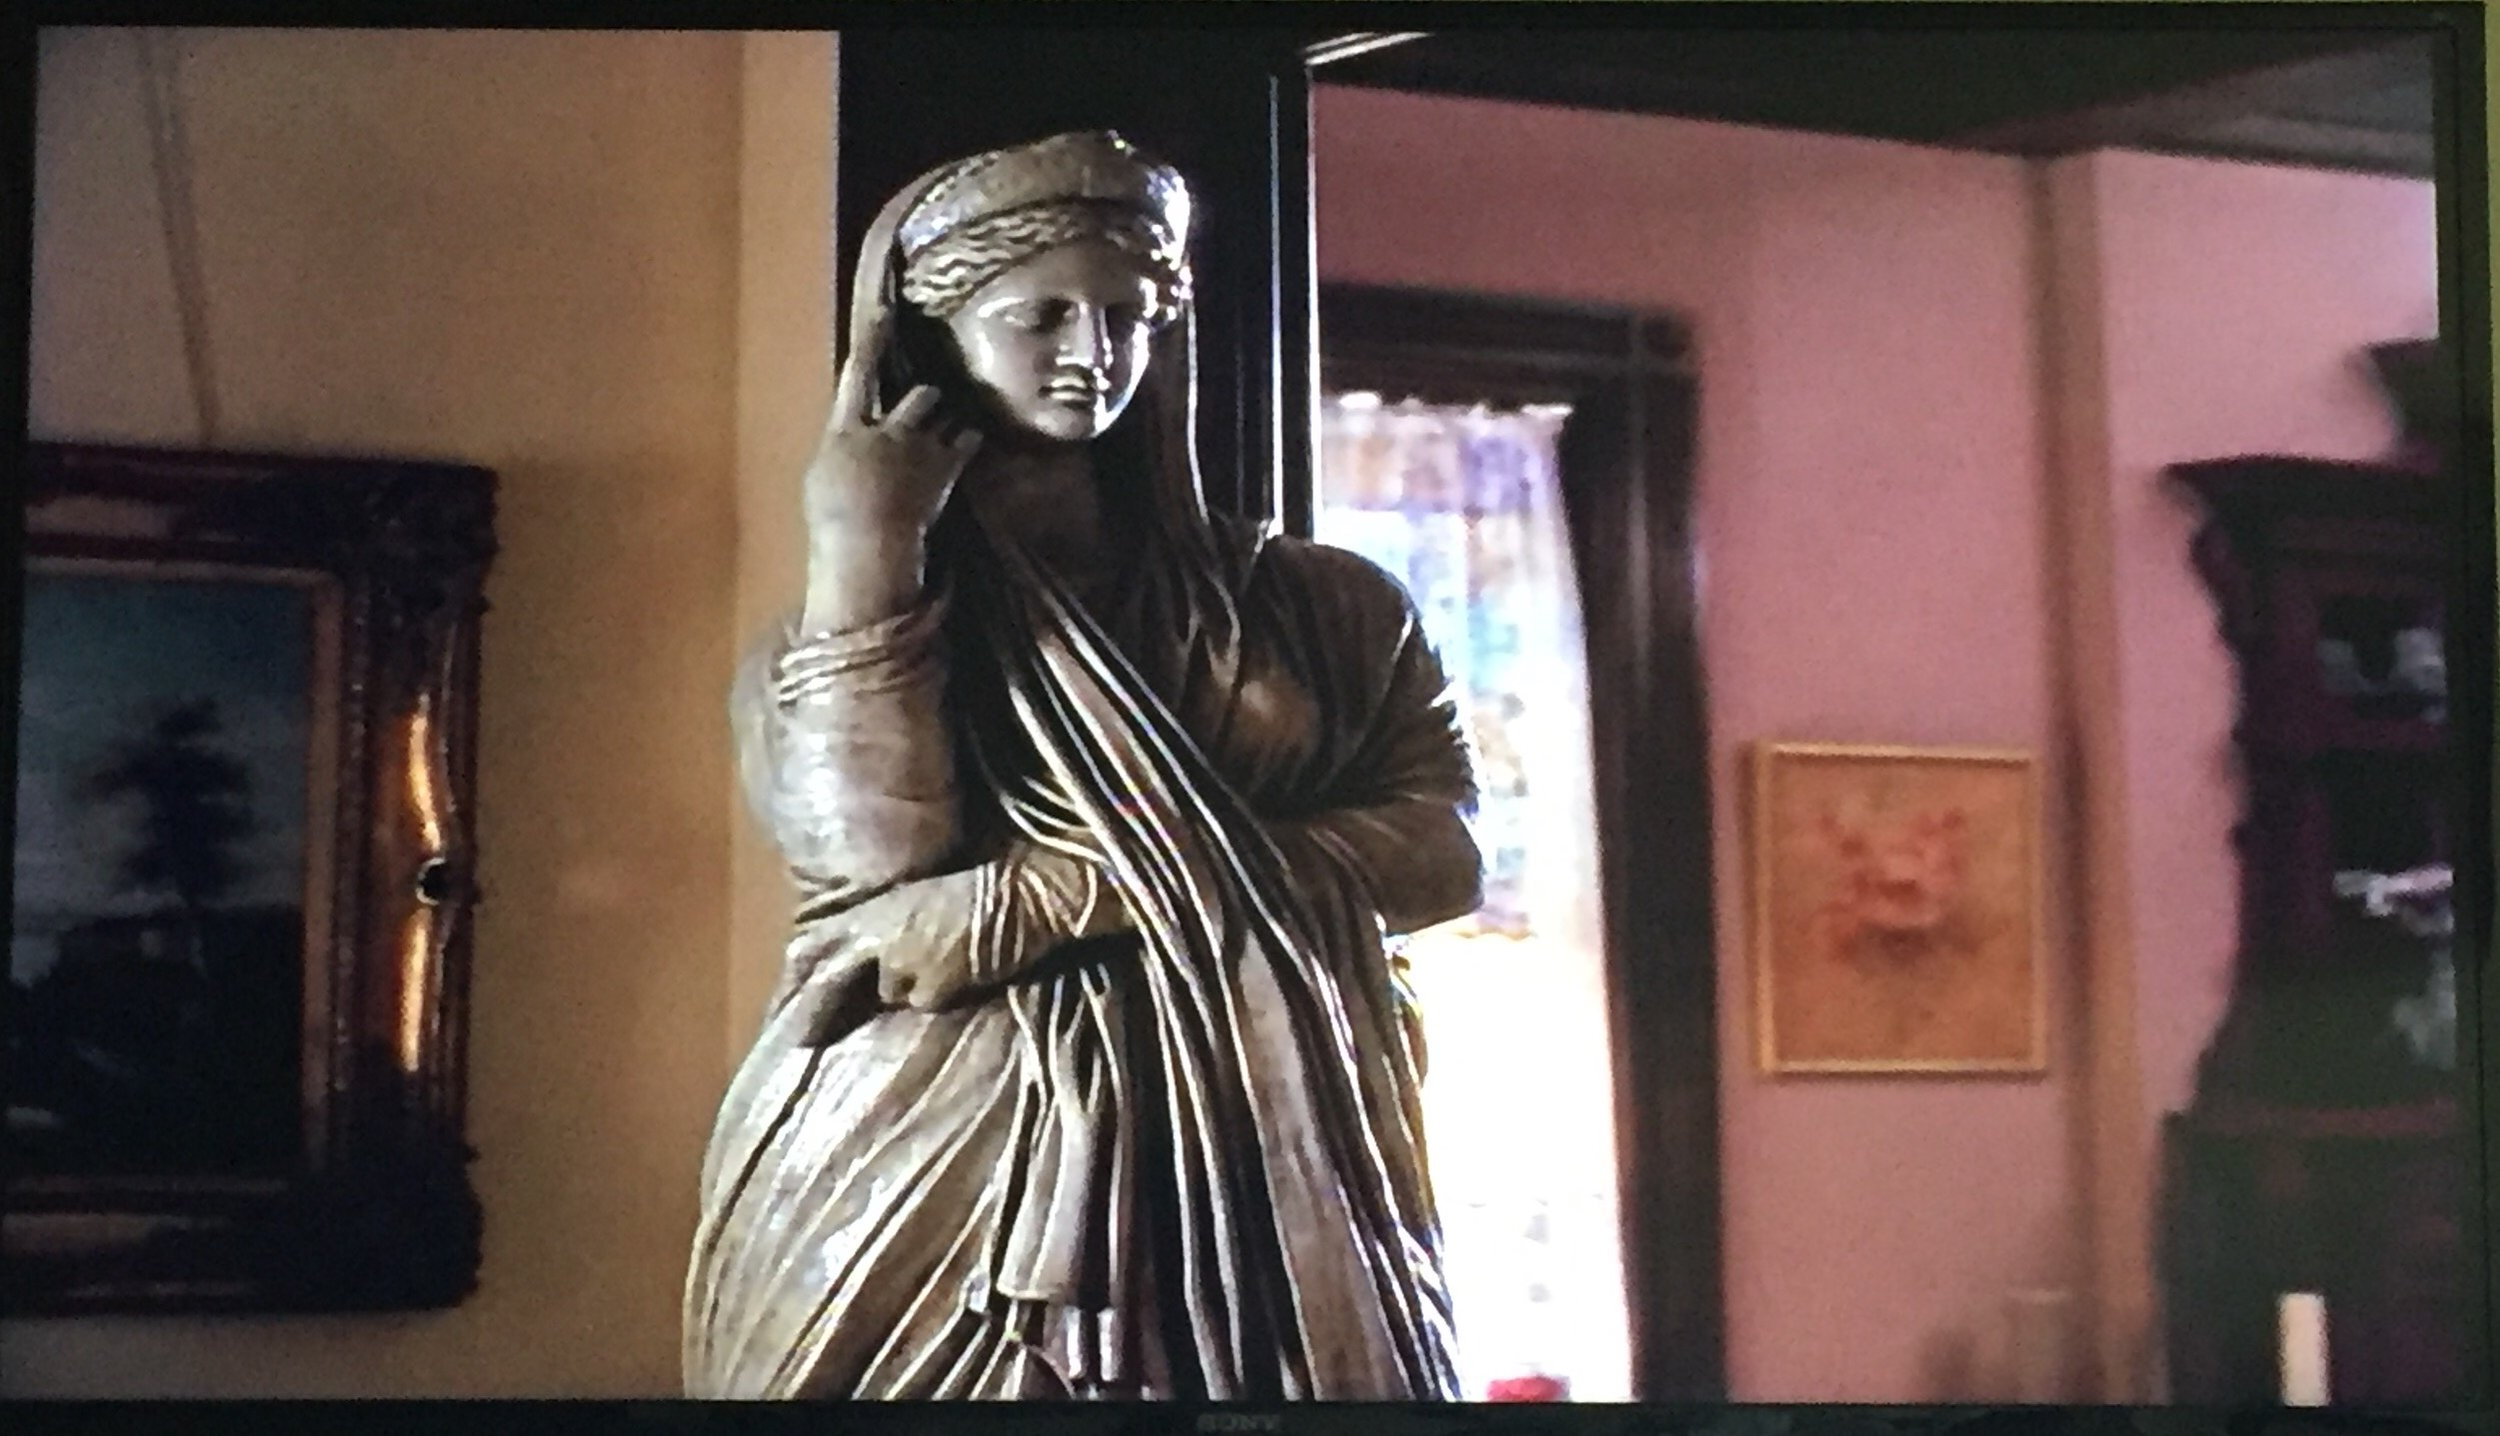 Do you think this statue is hideous? I don't think it goes with the decor of the house, but it's not hideous!